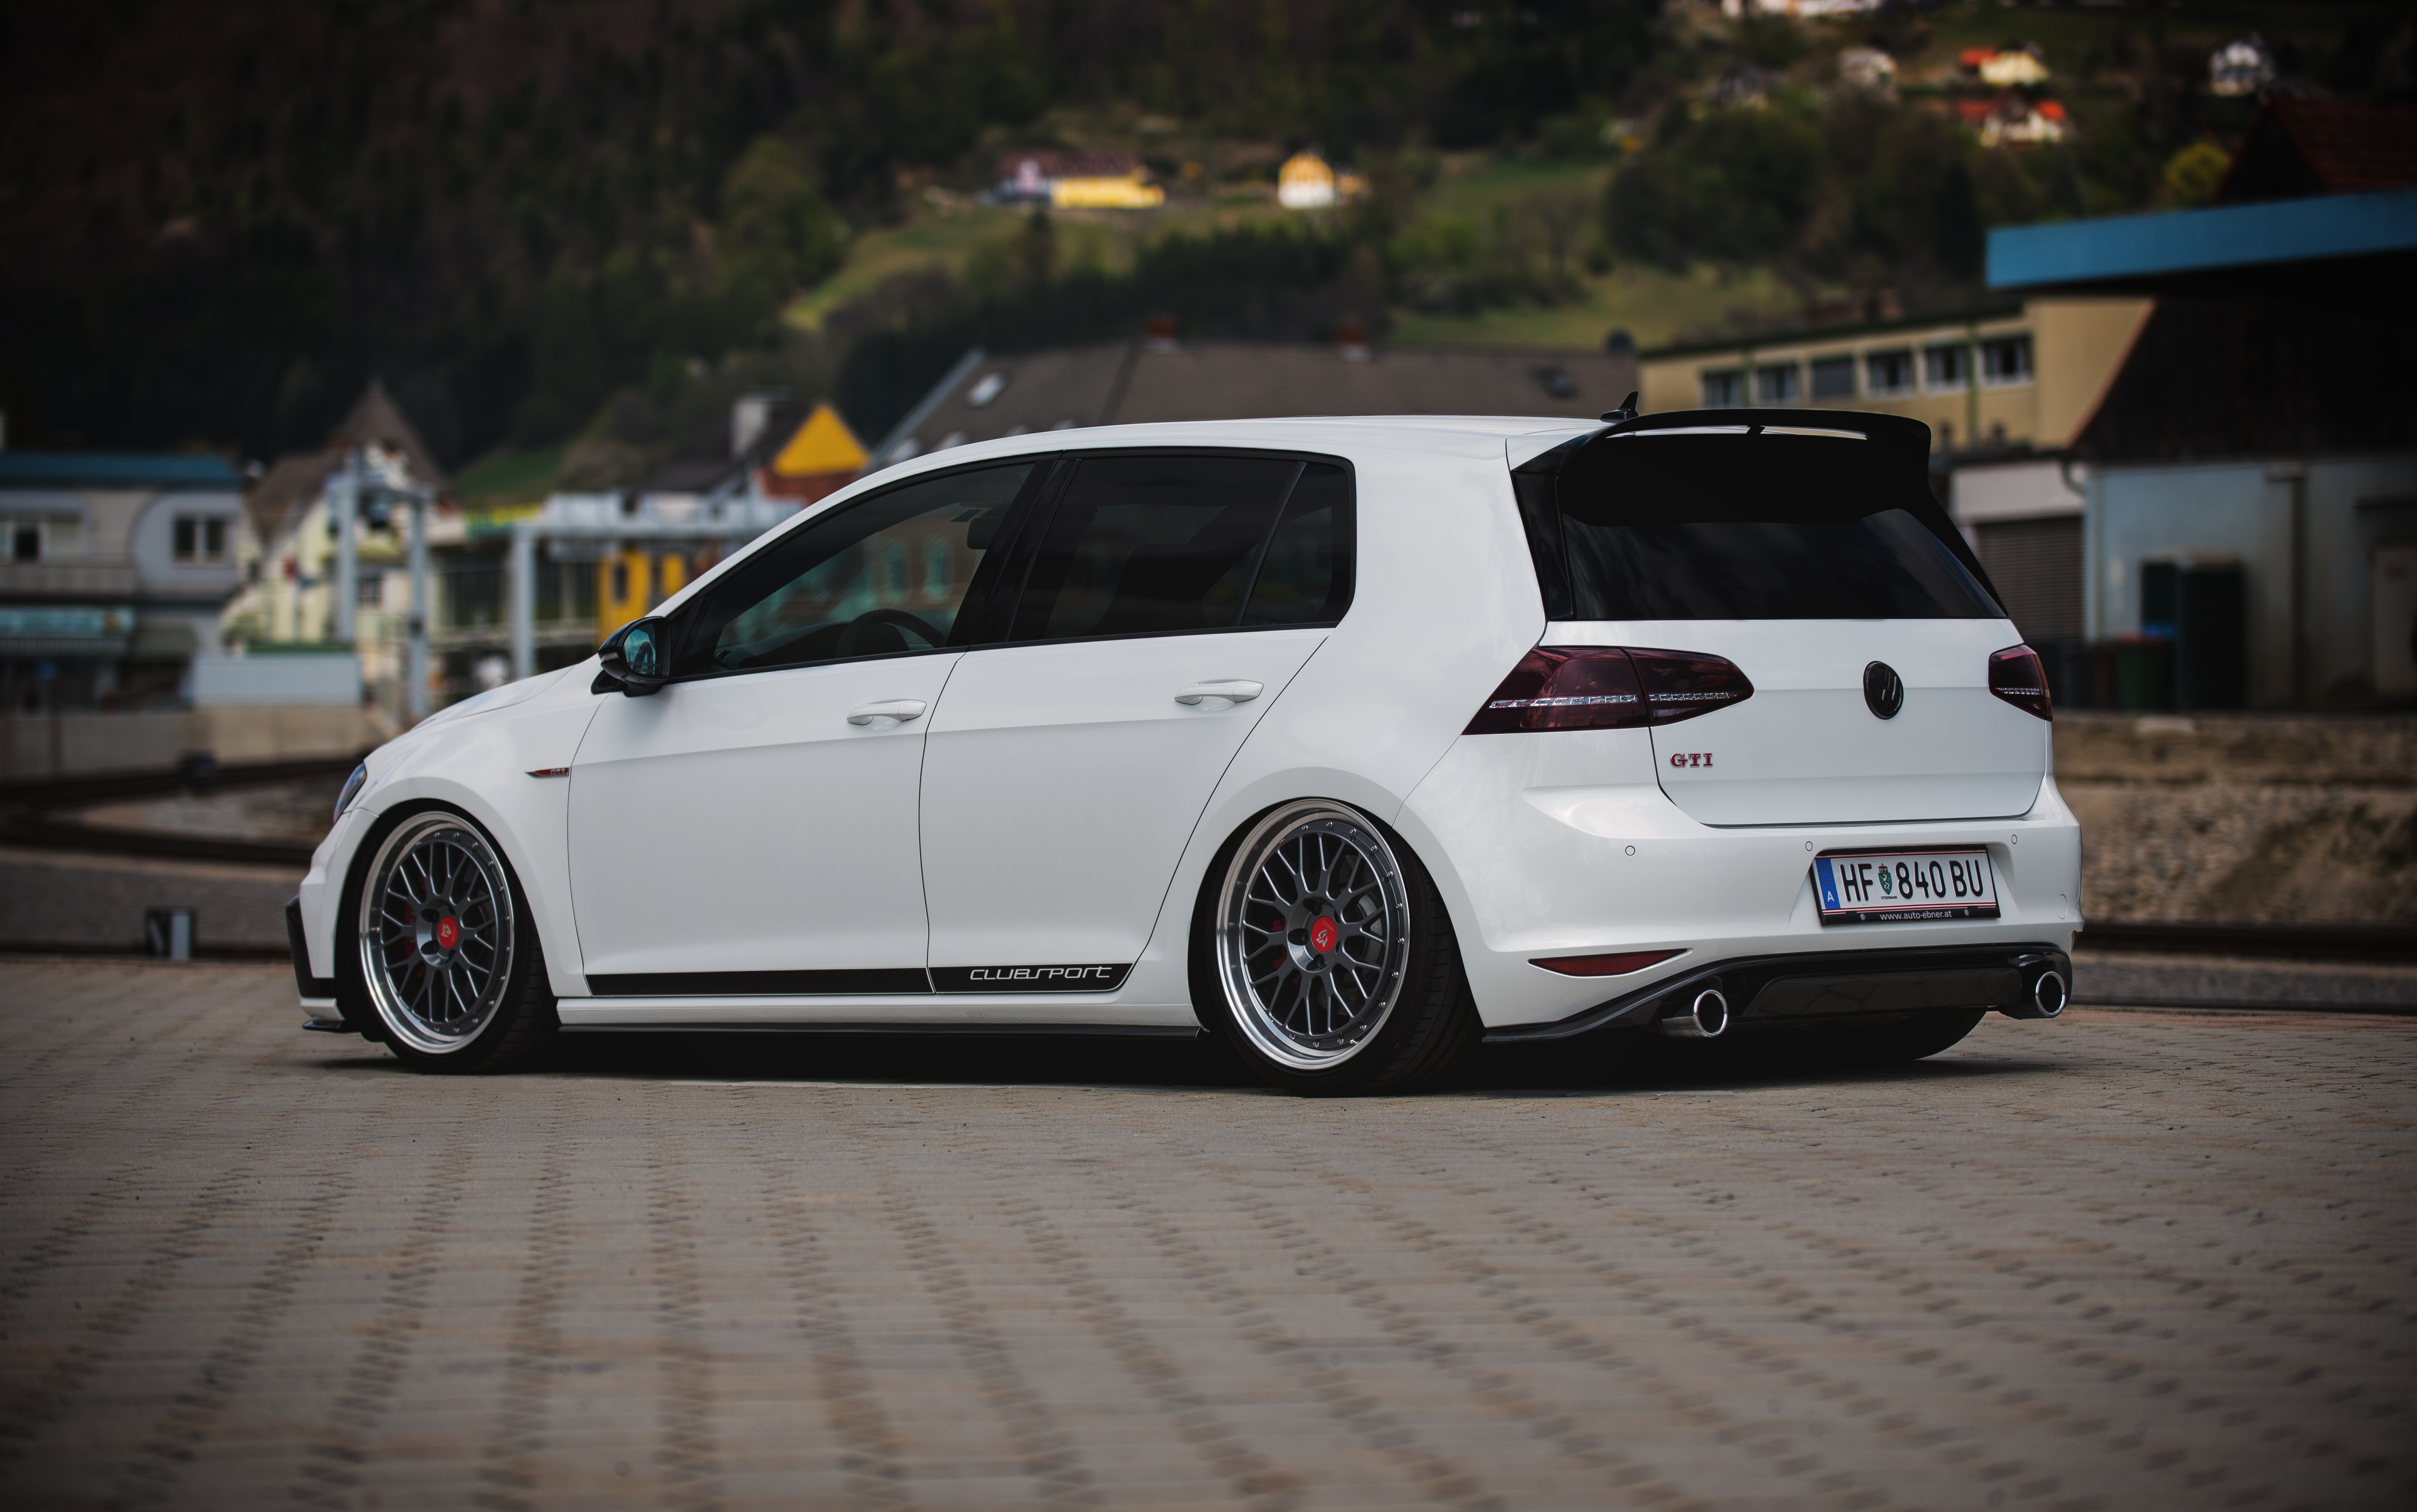 Dd C B besides Maxresdefault furthermore Golf Gti Performance likewise Oettinger R moreover Maxresdefault. on vw golf gti mk7